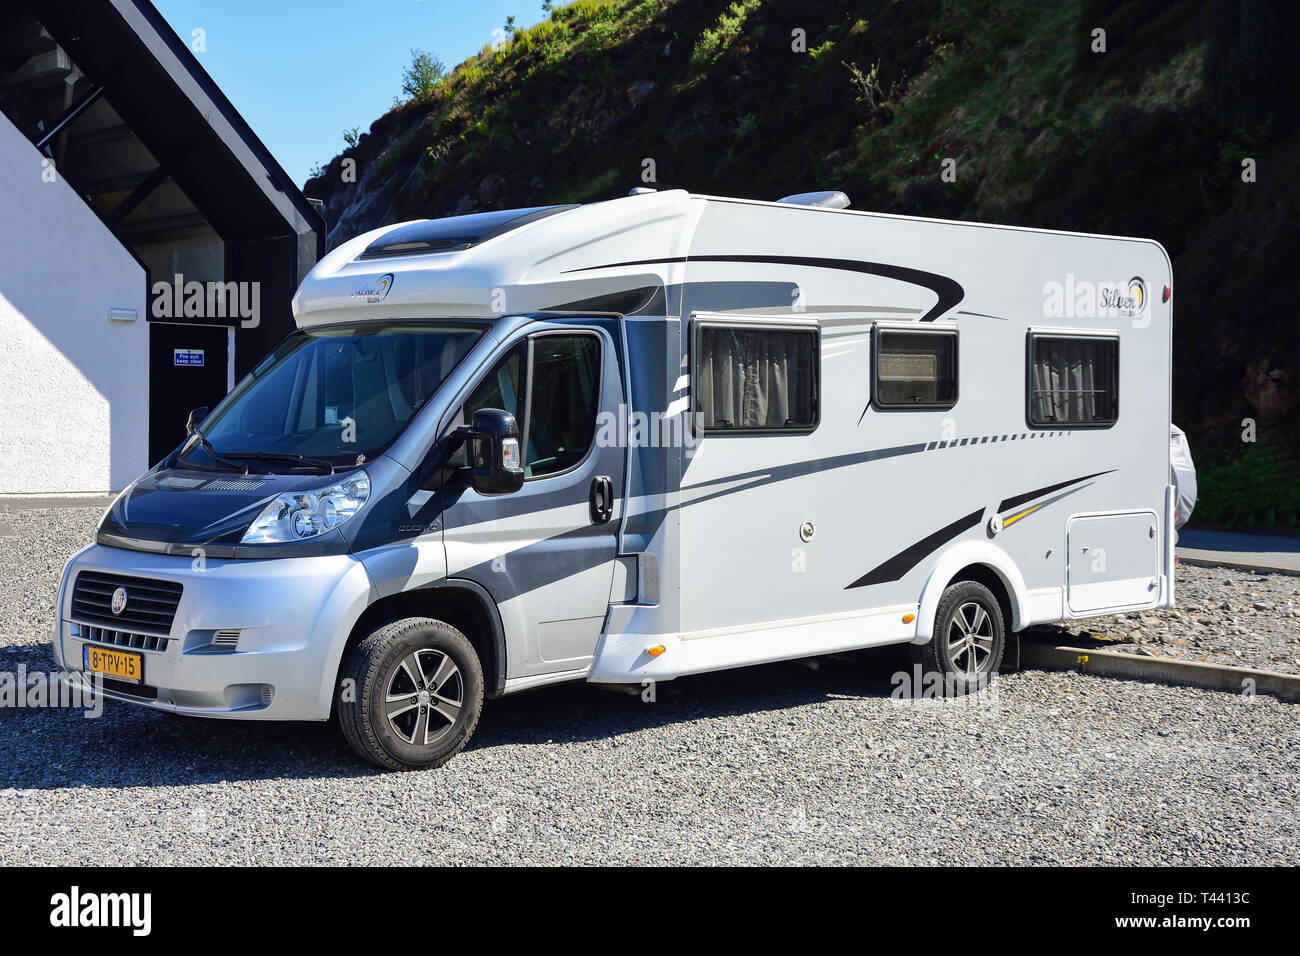 Fiat Ducato Motorhome In Car Park Tarbert Tairbeart Isle Of Harris Outer Hebrides Na H Eileanan Siar Scotland United Kingdom Stock Photo Alamy